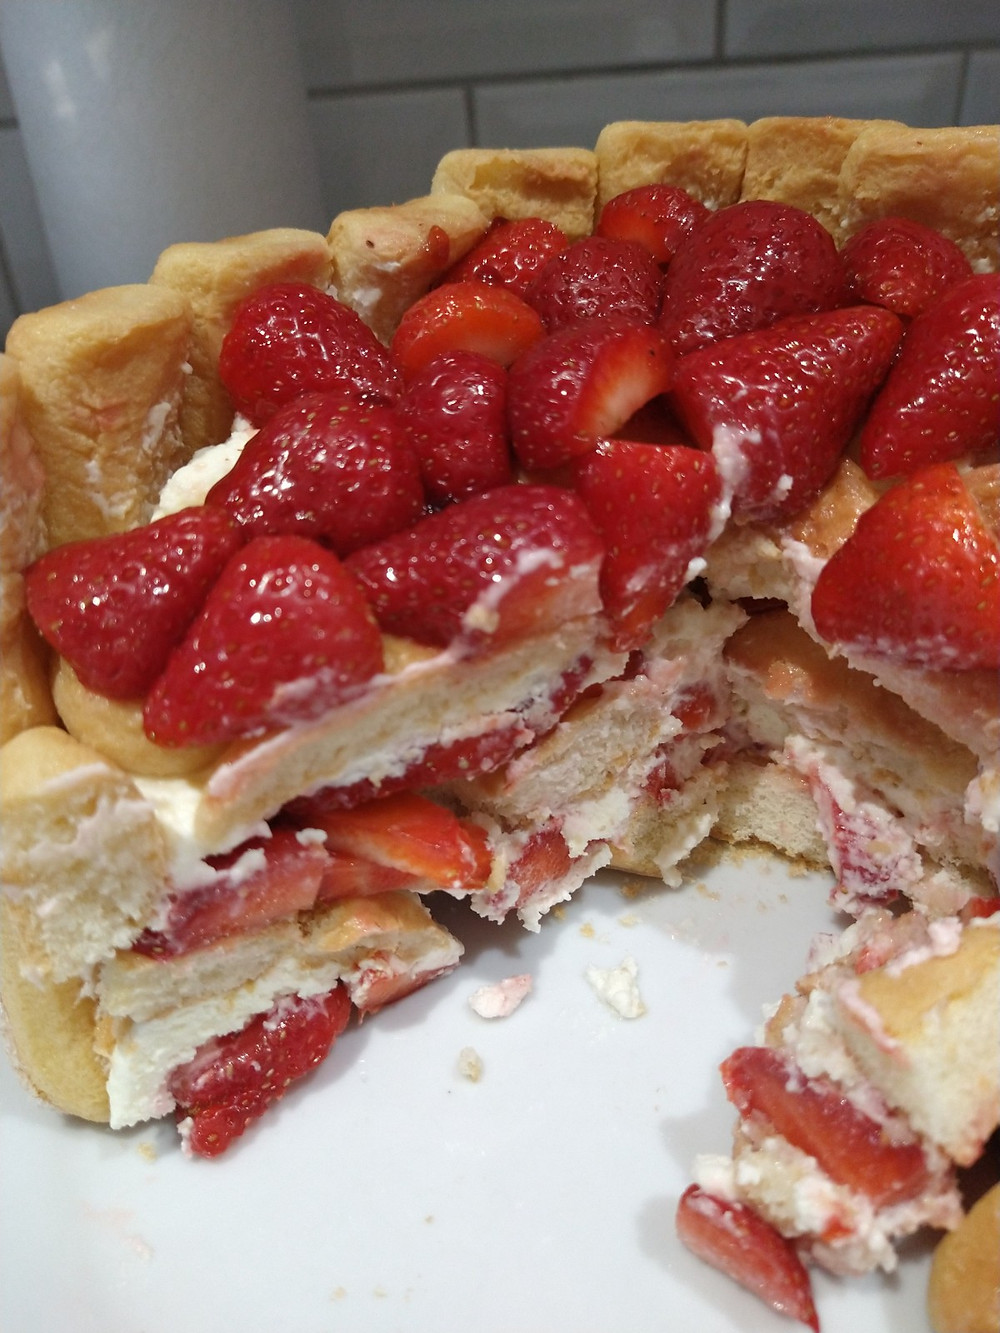 Strawberry charlotte falling apart after it's been sliced